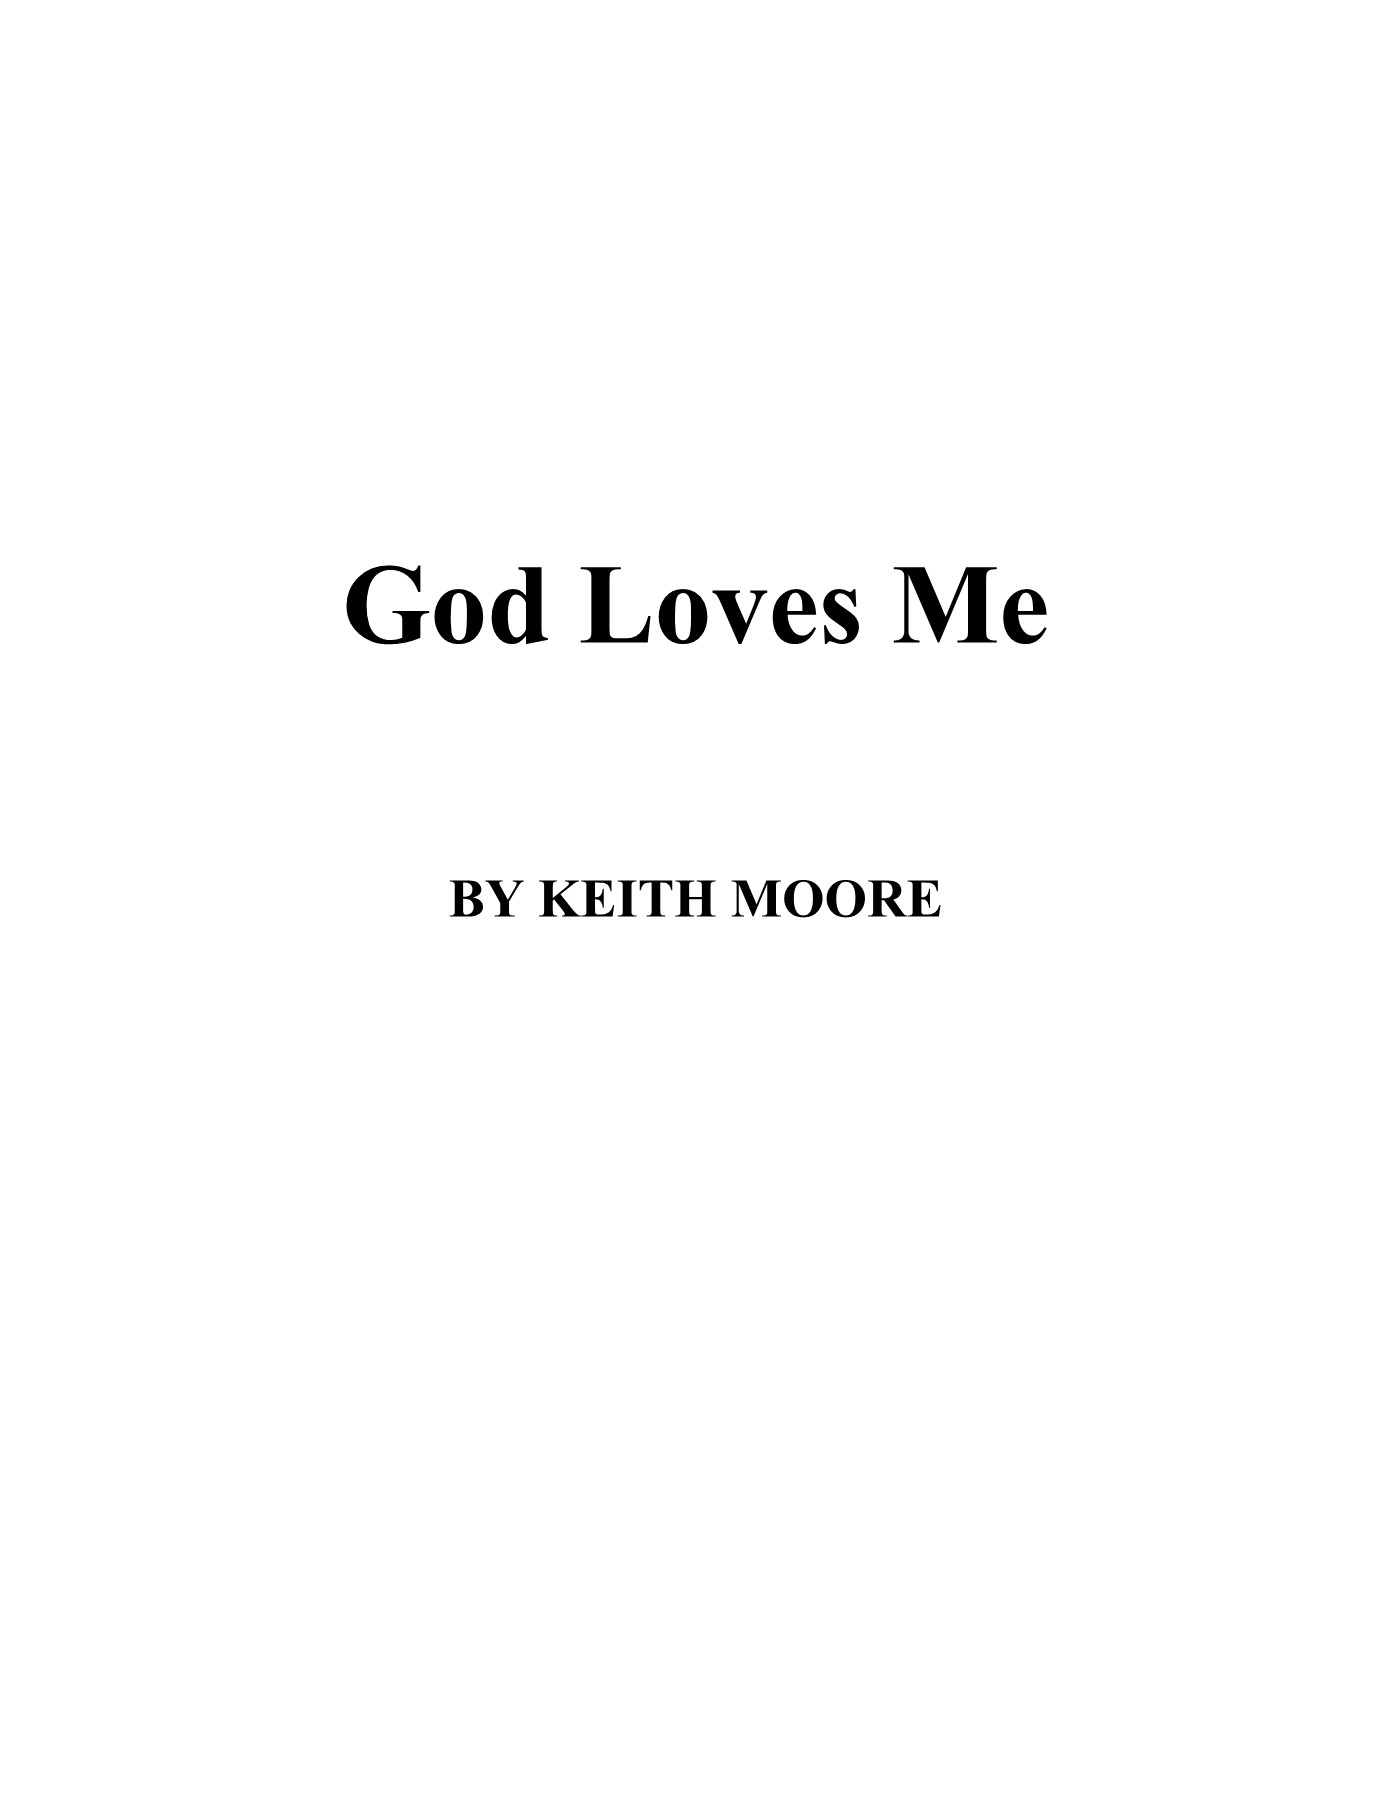 God Loves Me Mini Book After KM Proof Pages 1 16 Text